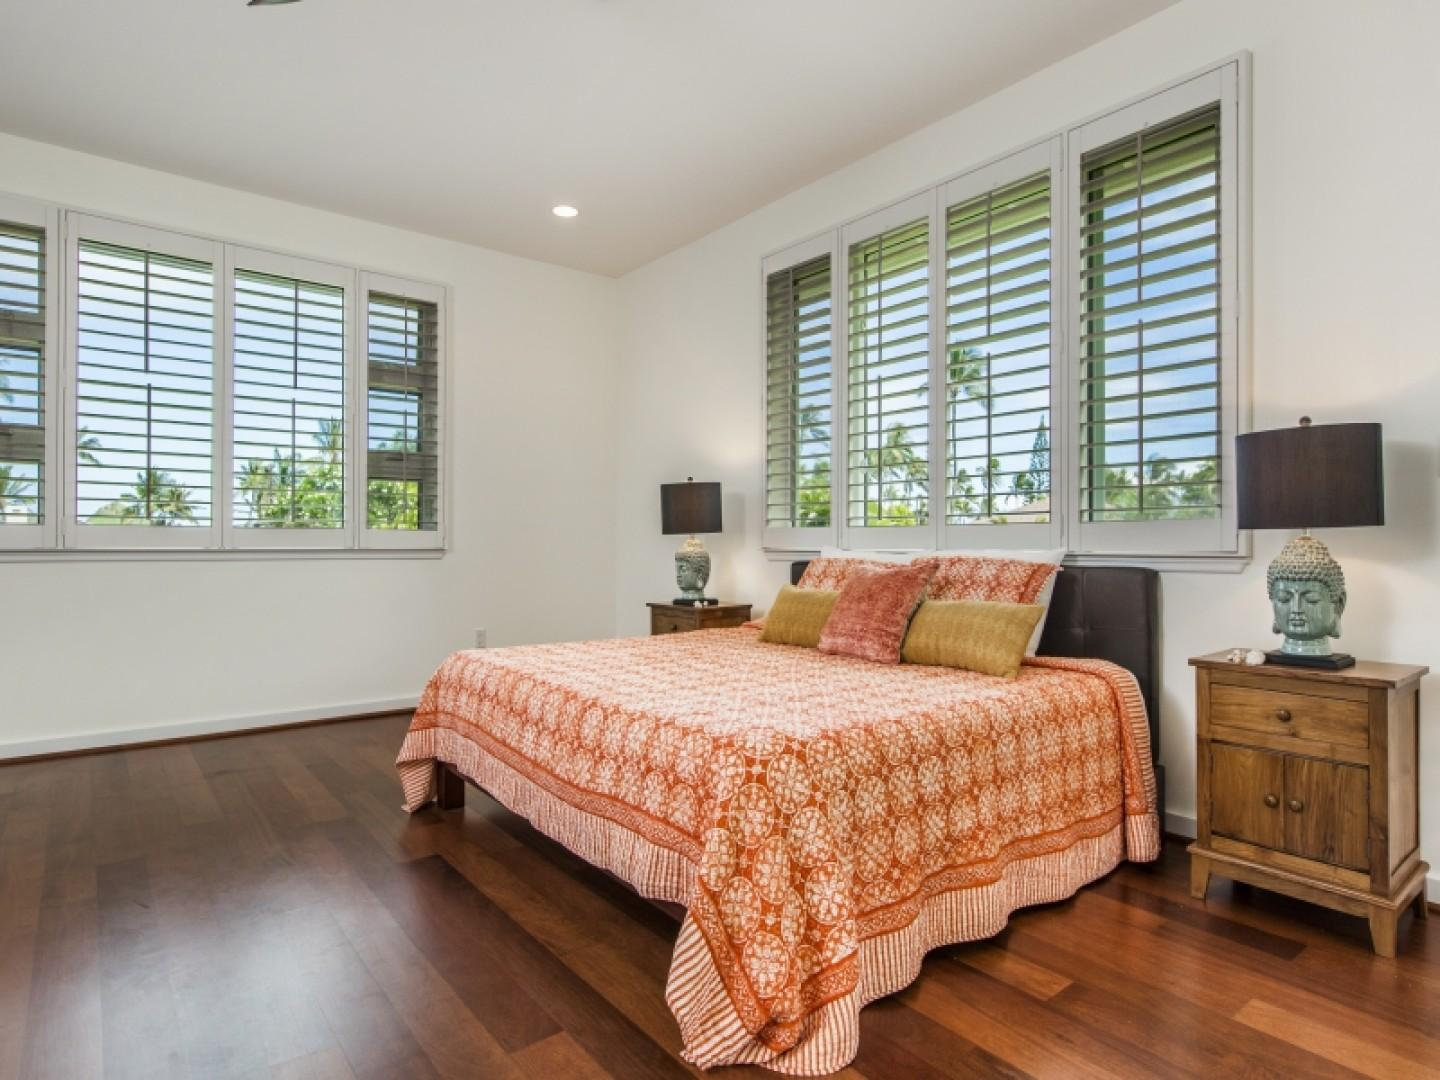 Master suite with king-size bed and plantation shutters around all the windows.